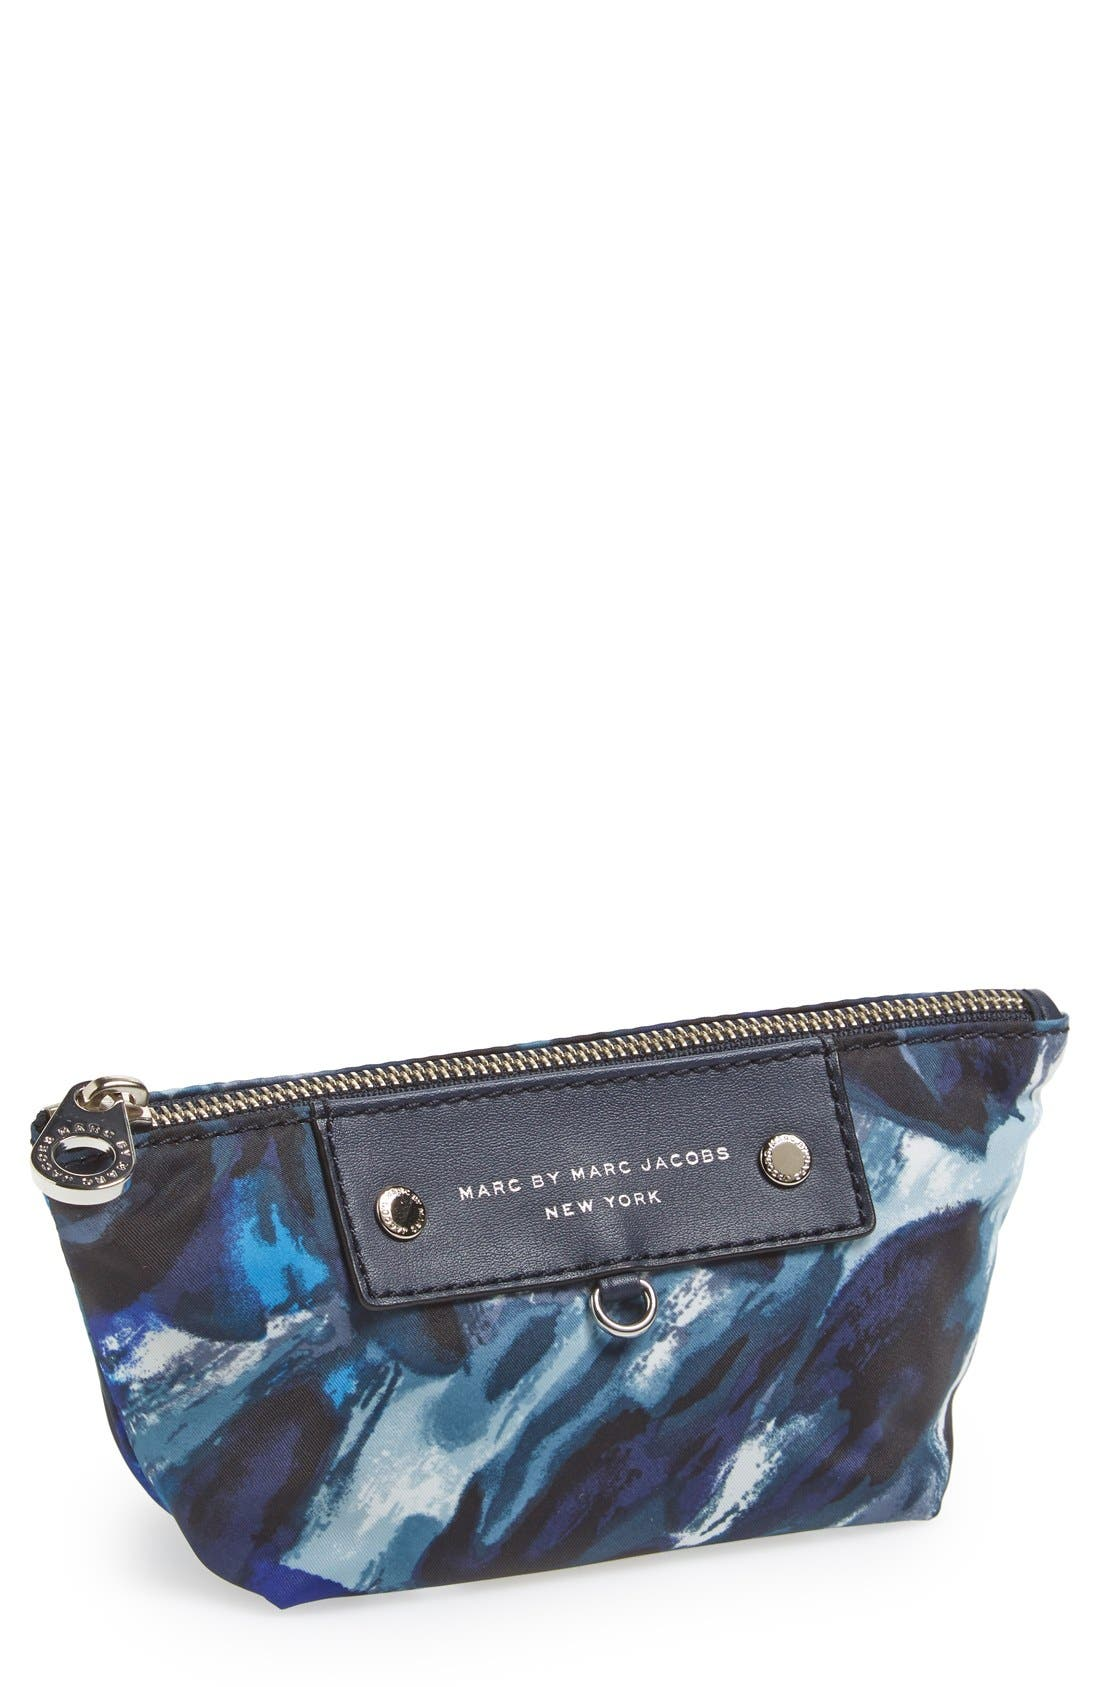 Main Image - MARC BY MARC JACOBS 'Small Preppy' Cosmetics Case